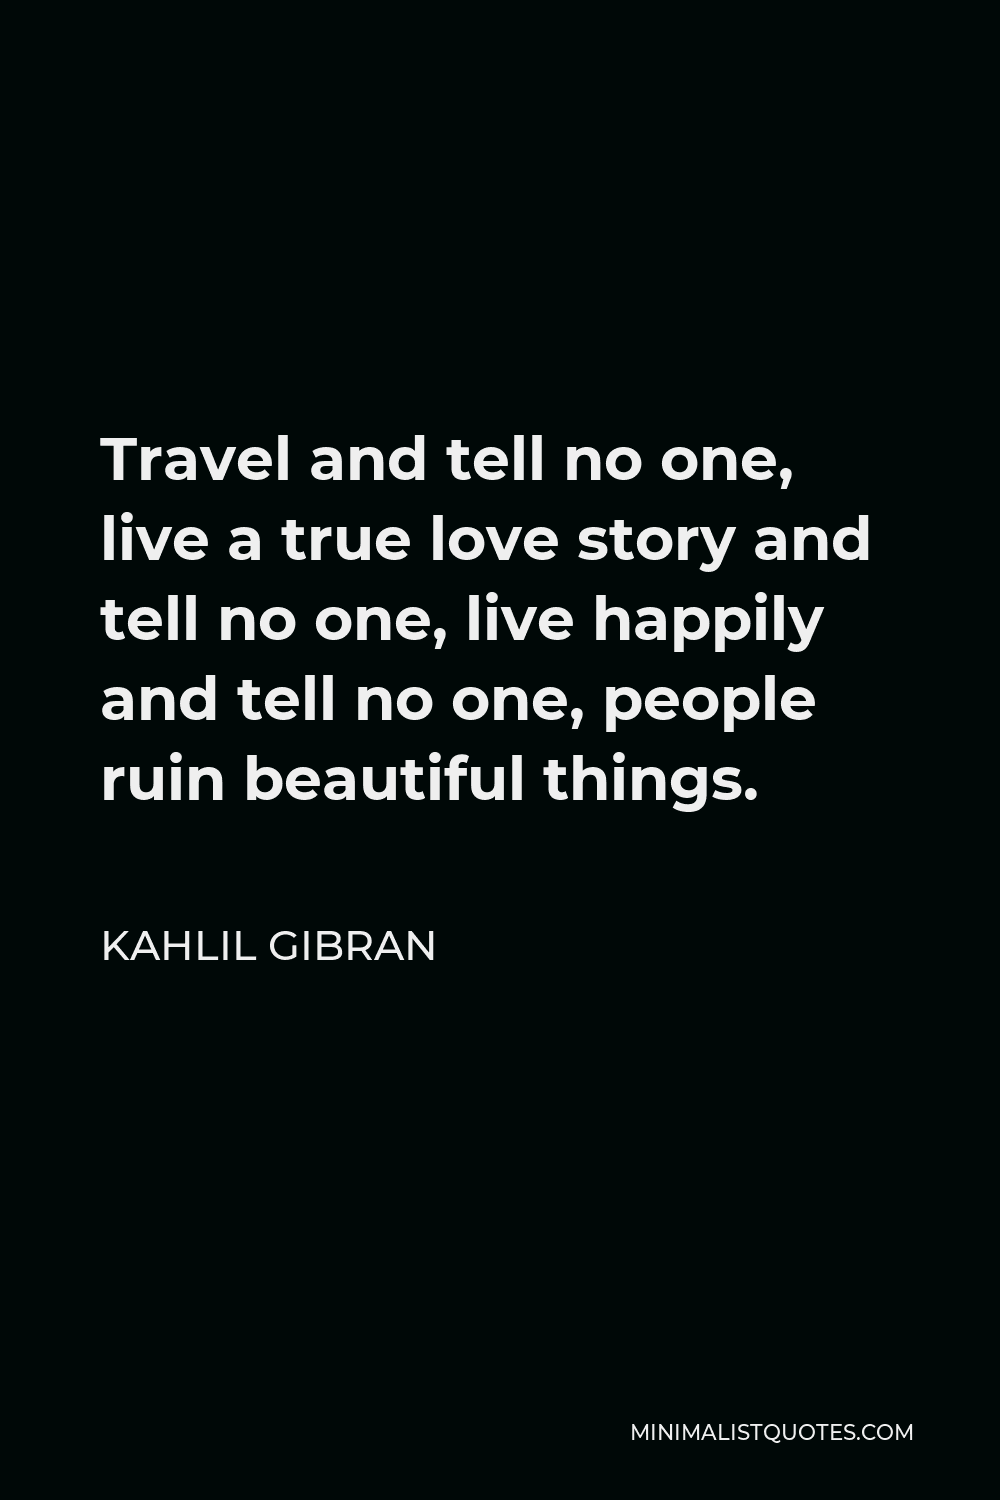 Kahlil Gibran Quote - Travel and tell no one, live a true love story and tell no one, live happily and tell no one, people ruin beautiful things.